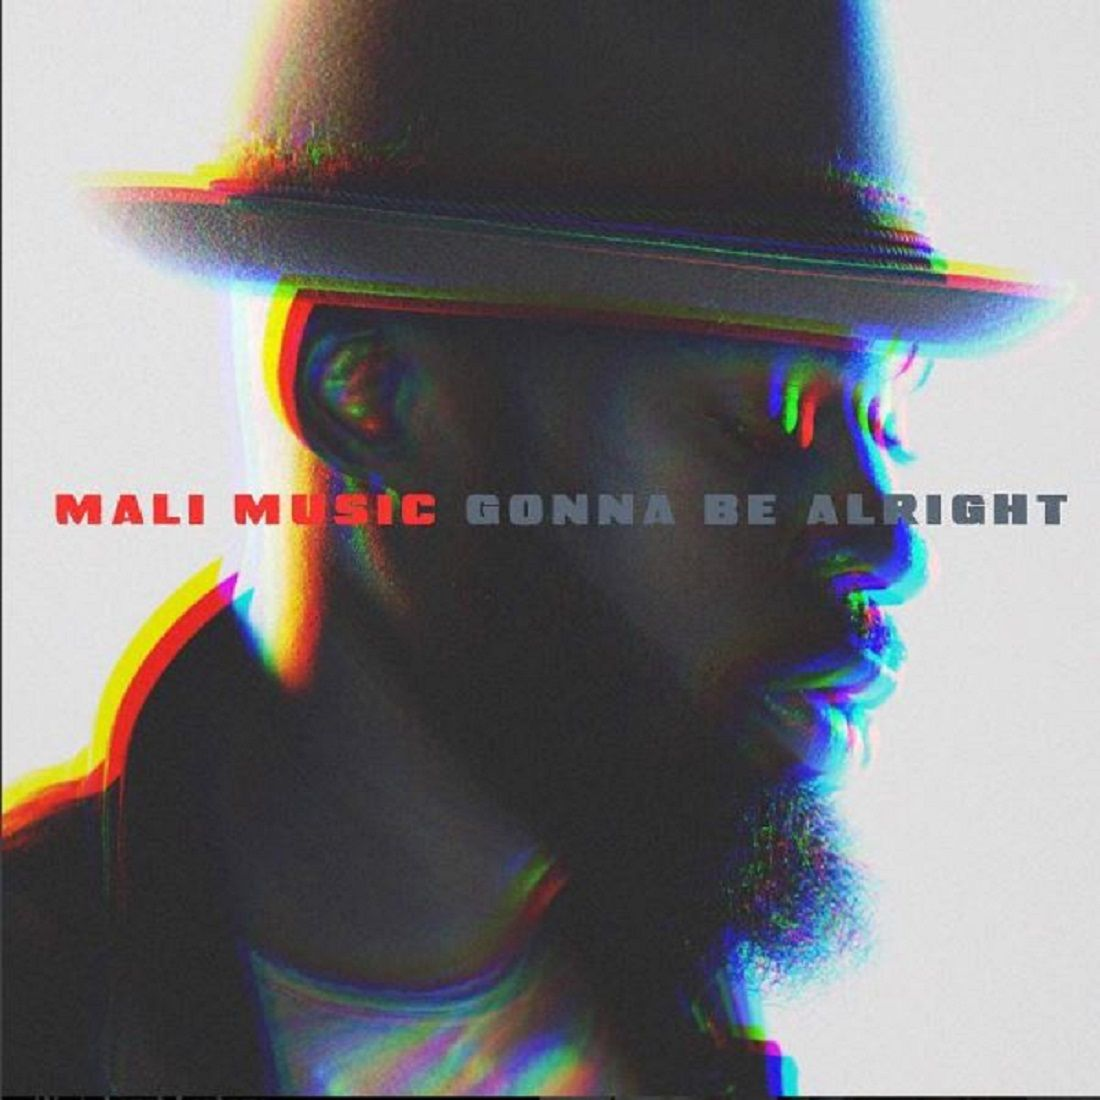 Mali Music Drops New Single Gonna Be Alright Gonna Be Alright